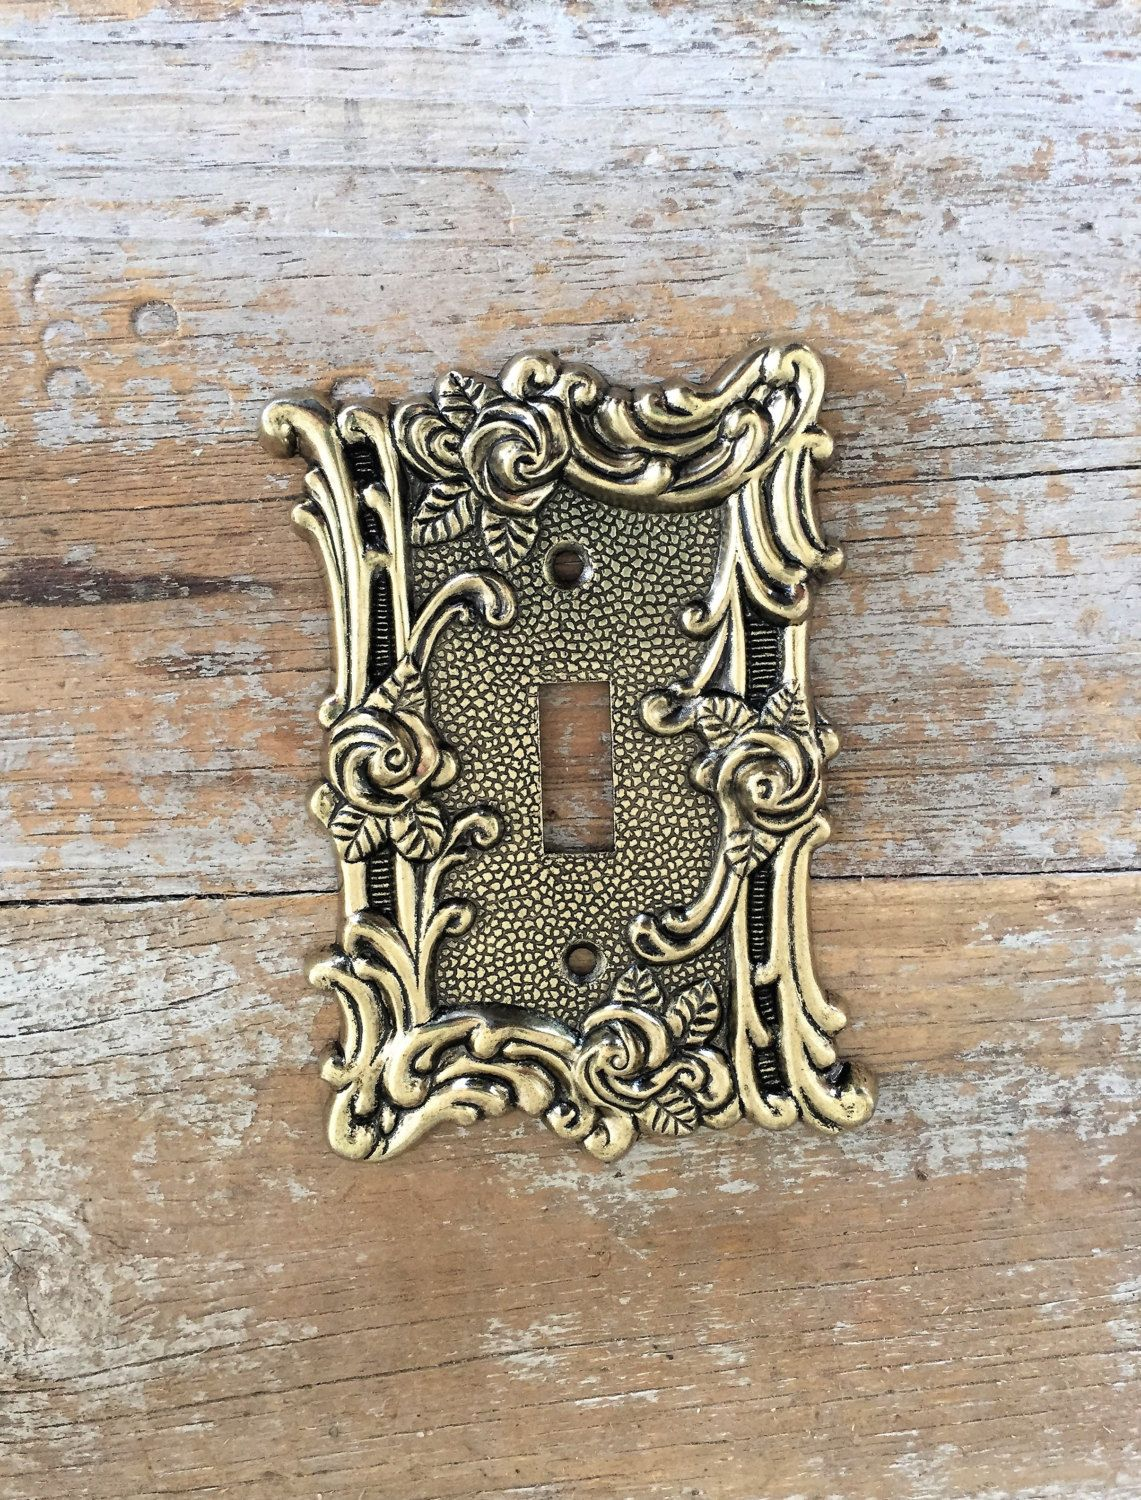 Brass Light Switch Covers Awesome Light Switch Cover Lightswitch Plate Brass Light Switch Cover Design Inspiration